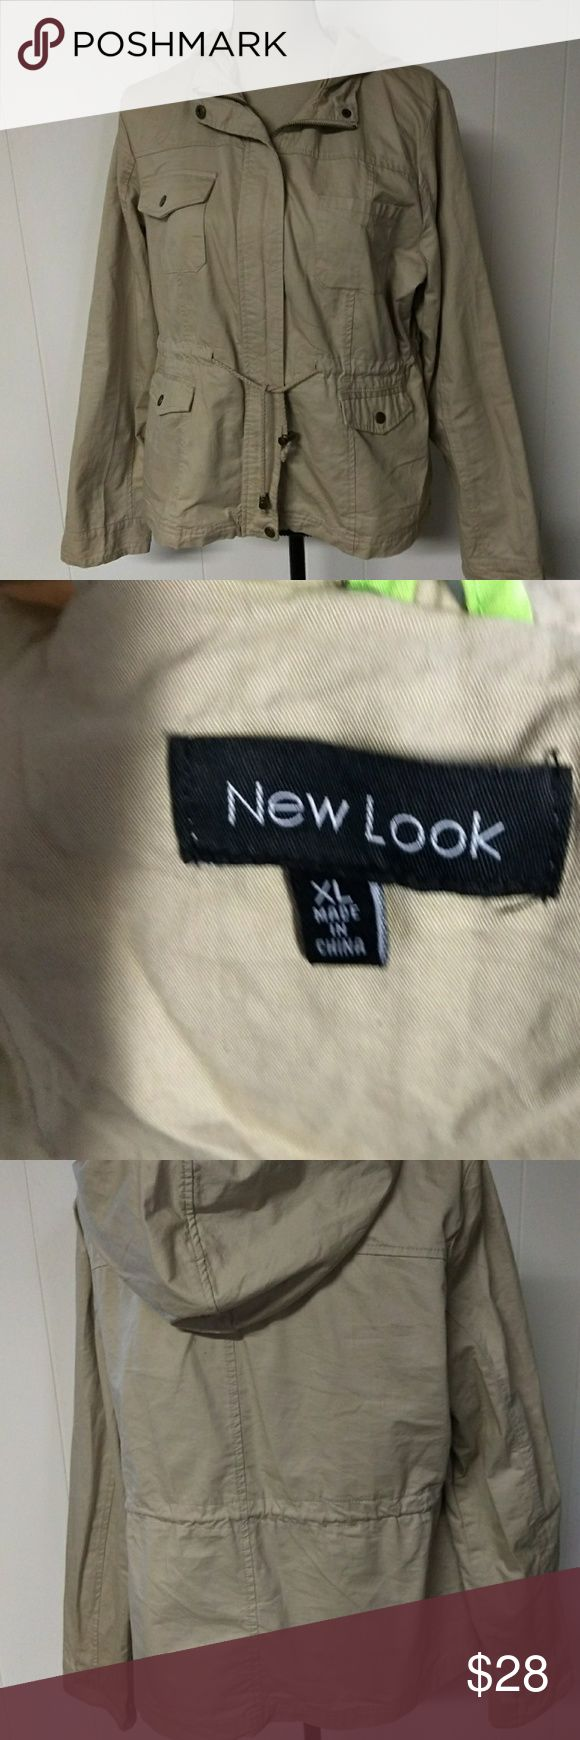 """New Look tan jacket with hood Zip and snap closure Draw string at waist 100% cotton  Light. weight 2 breasts pockets Size XL 19"""" length 23"""" pit to pit 25"""" sleeve 20"""" across front at hem New Look Jackets & Coats"""